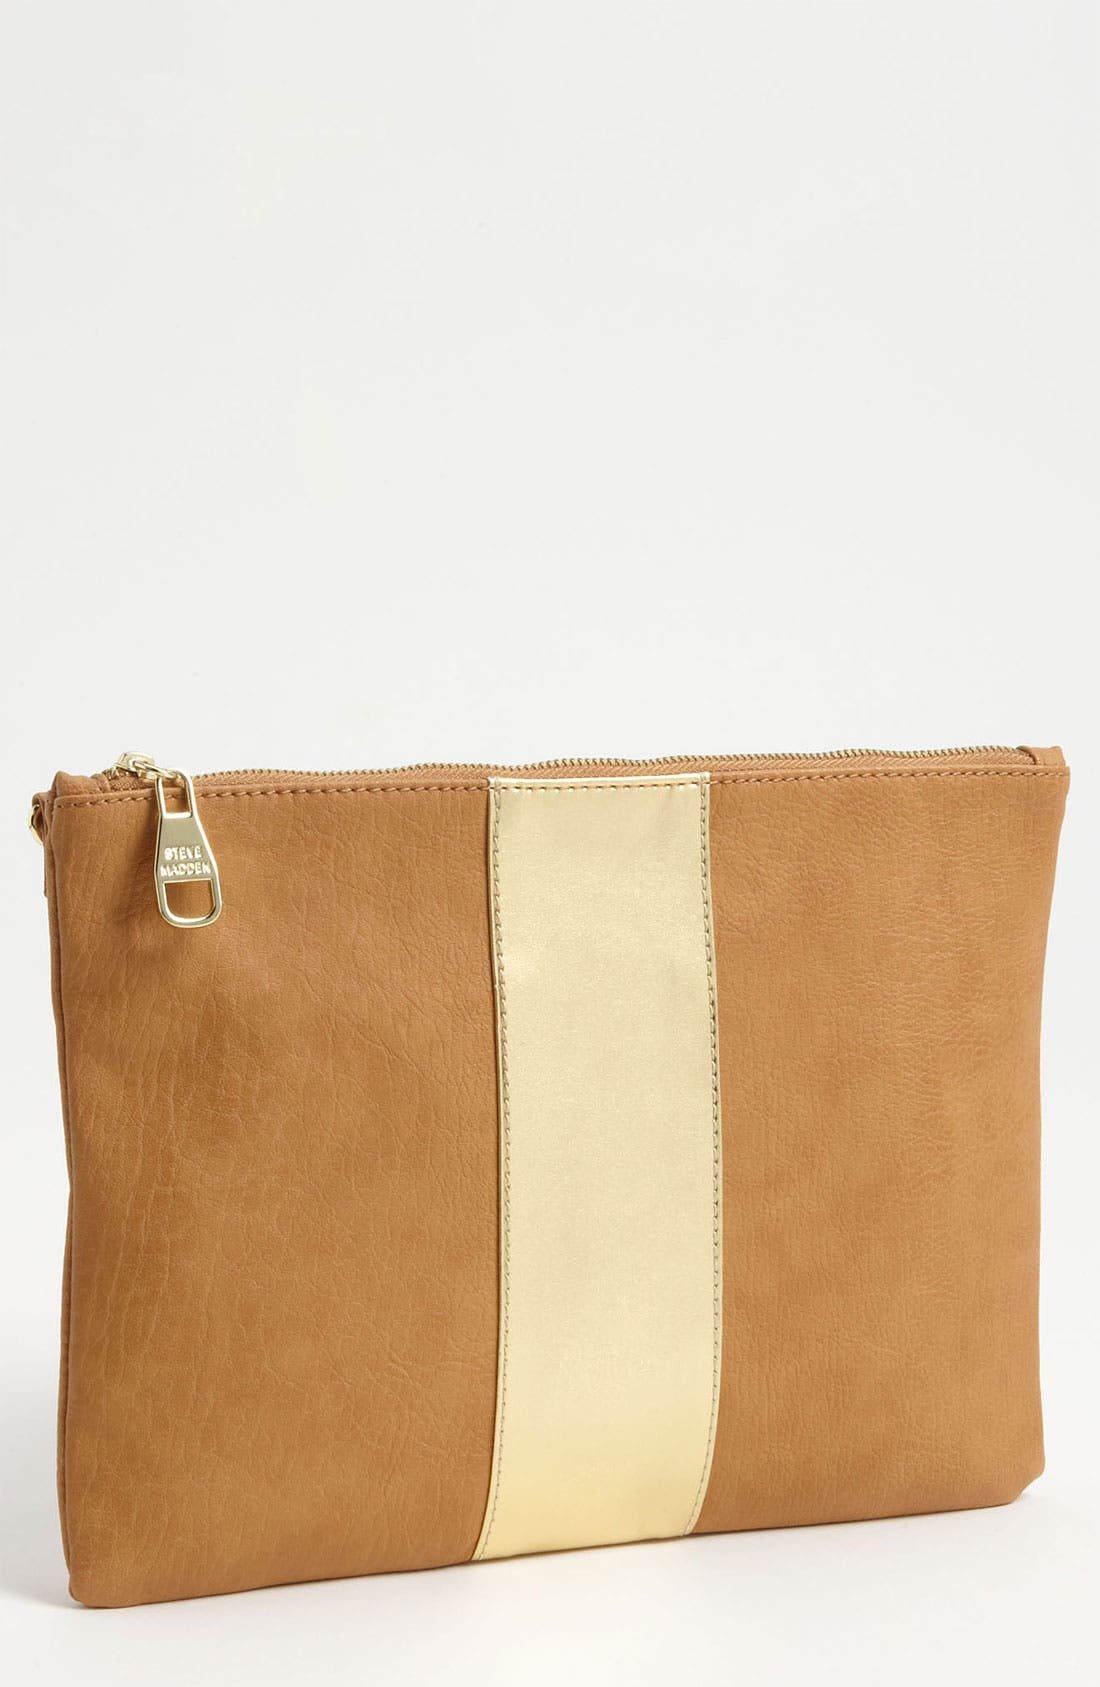 Main Image - Steve Madden 'Stylarr' Clutch